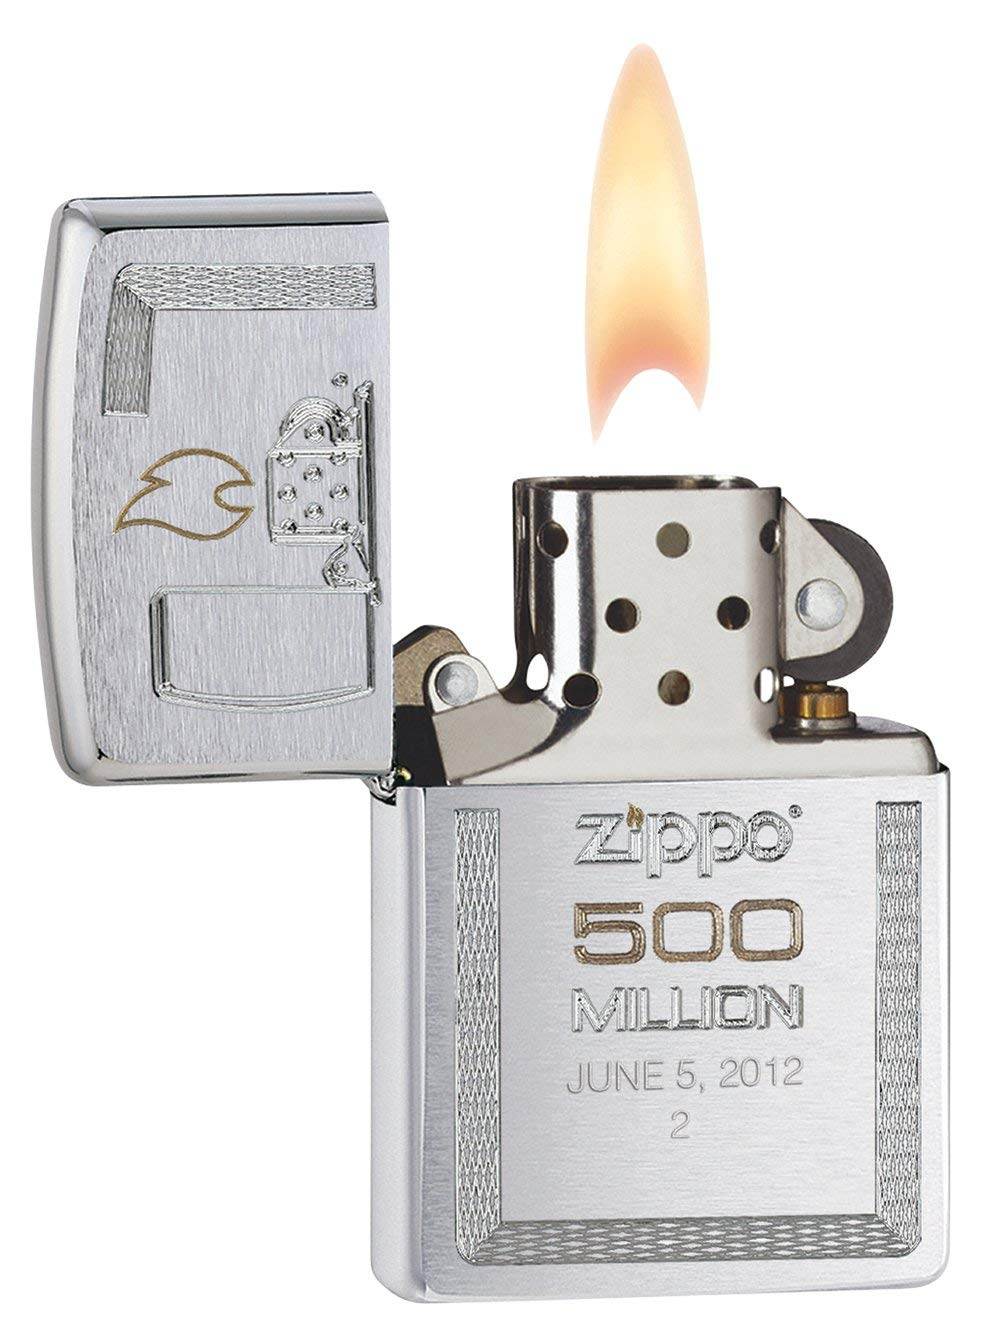 Zippo Limited Edition Gift Set 500 Million Zippo Replica Edition Brushed Chrome giới hạn quý hiếm